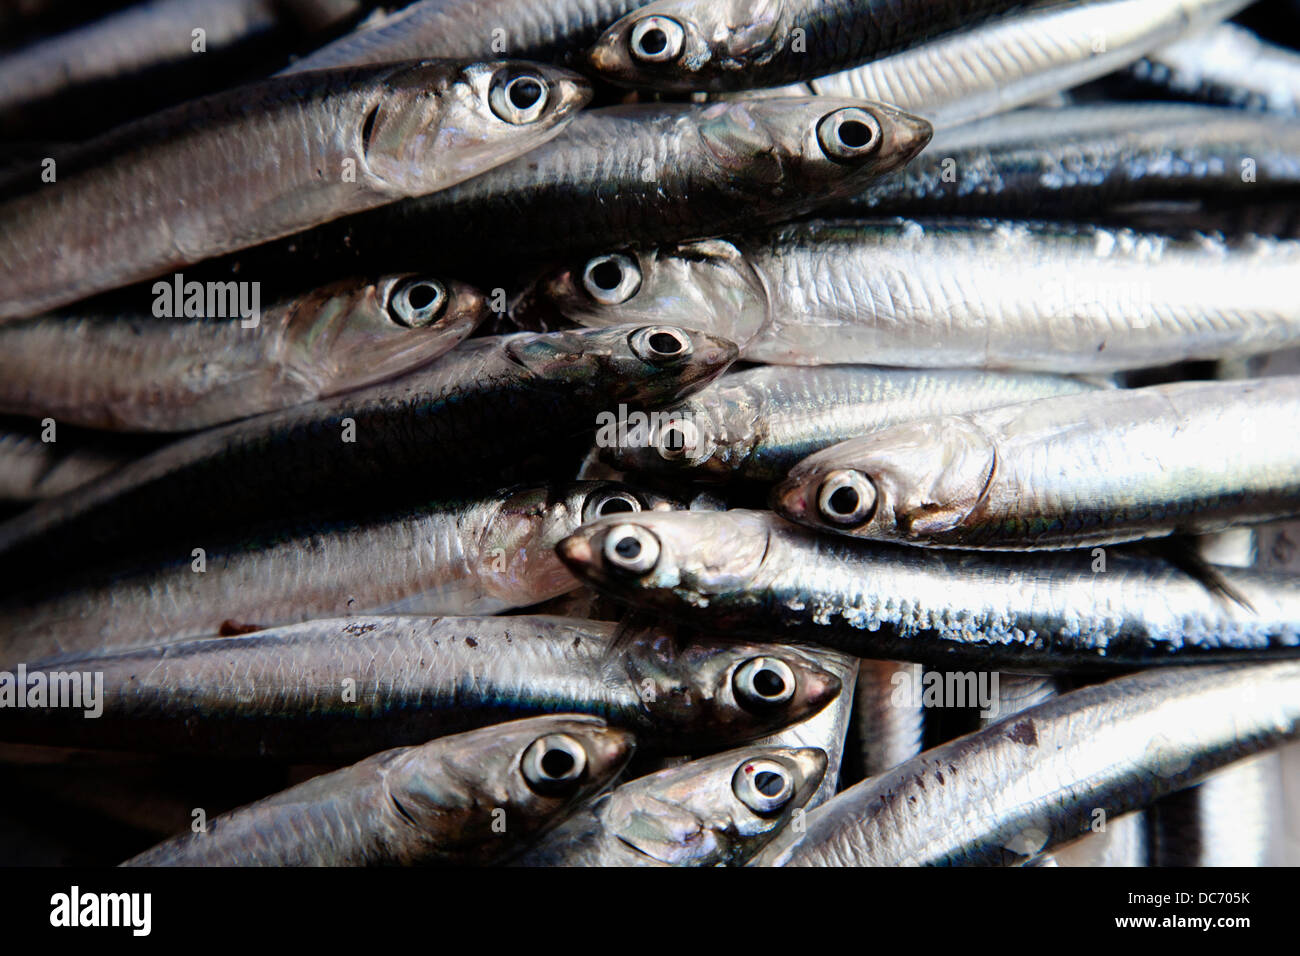 Fresh anchovies, Barcelona, Spain. - Stock Image